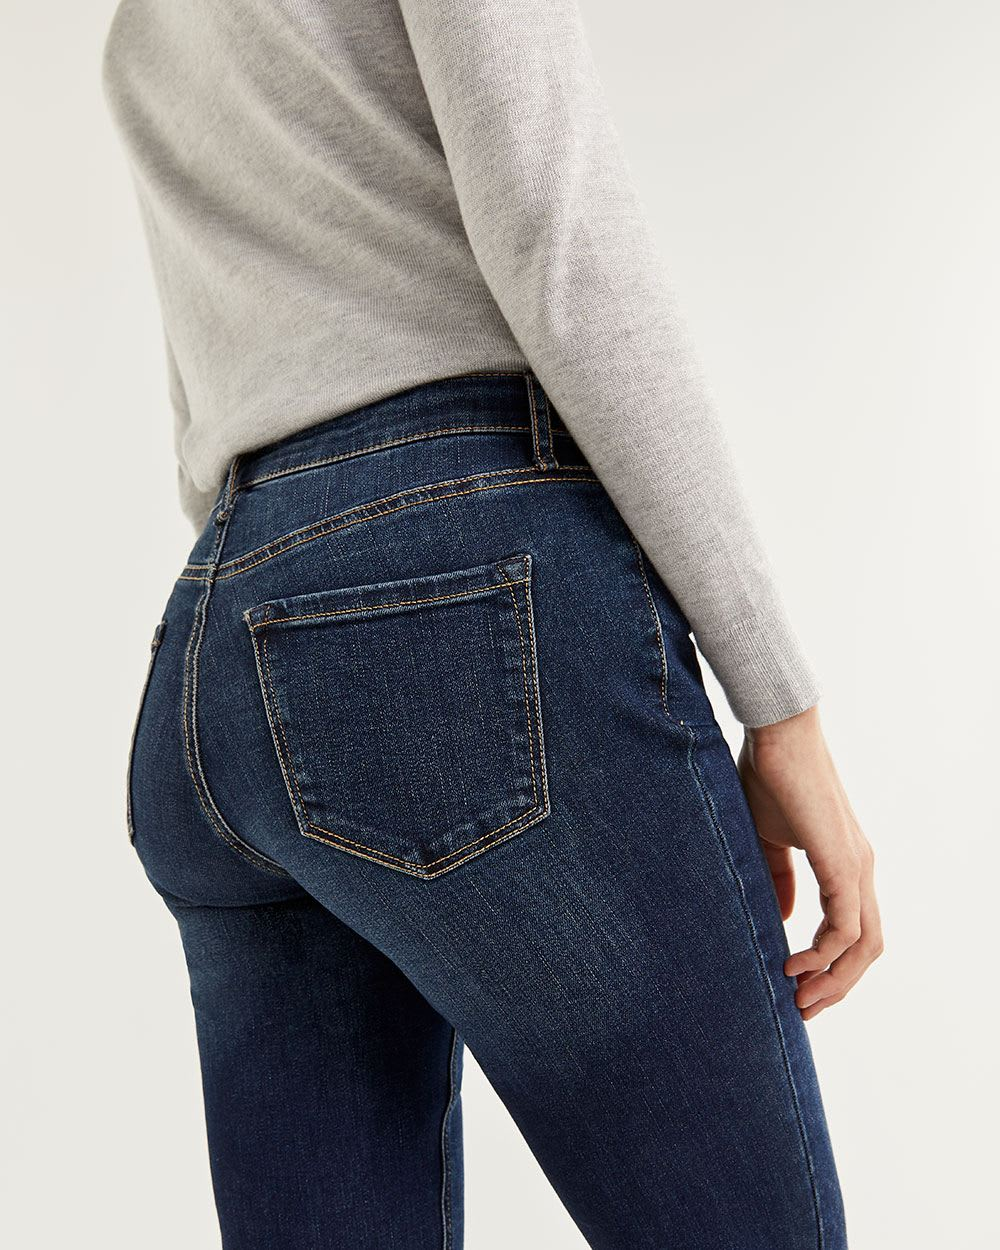 The Insider Straight Jeans